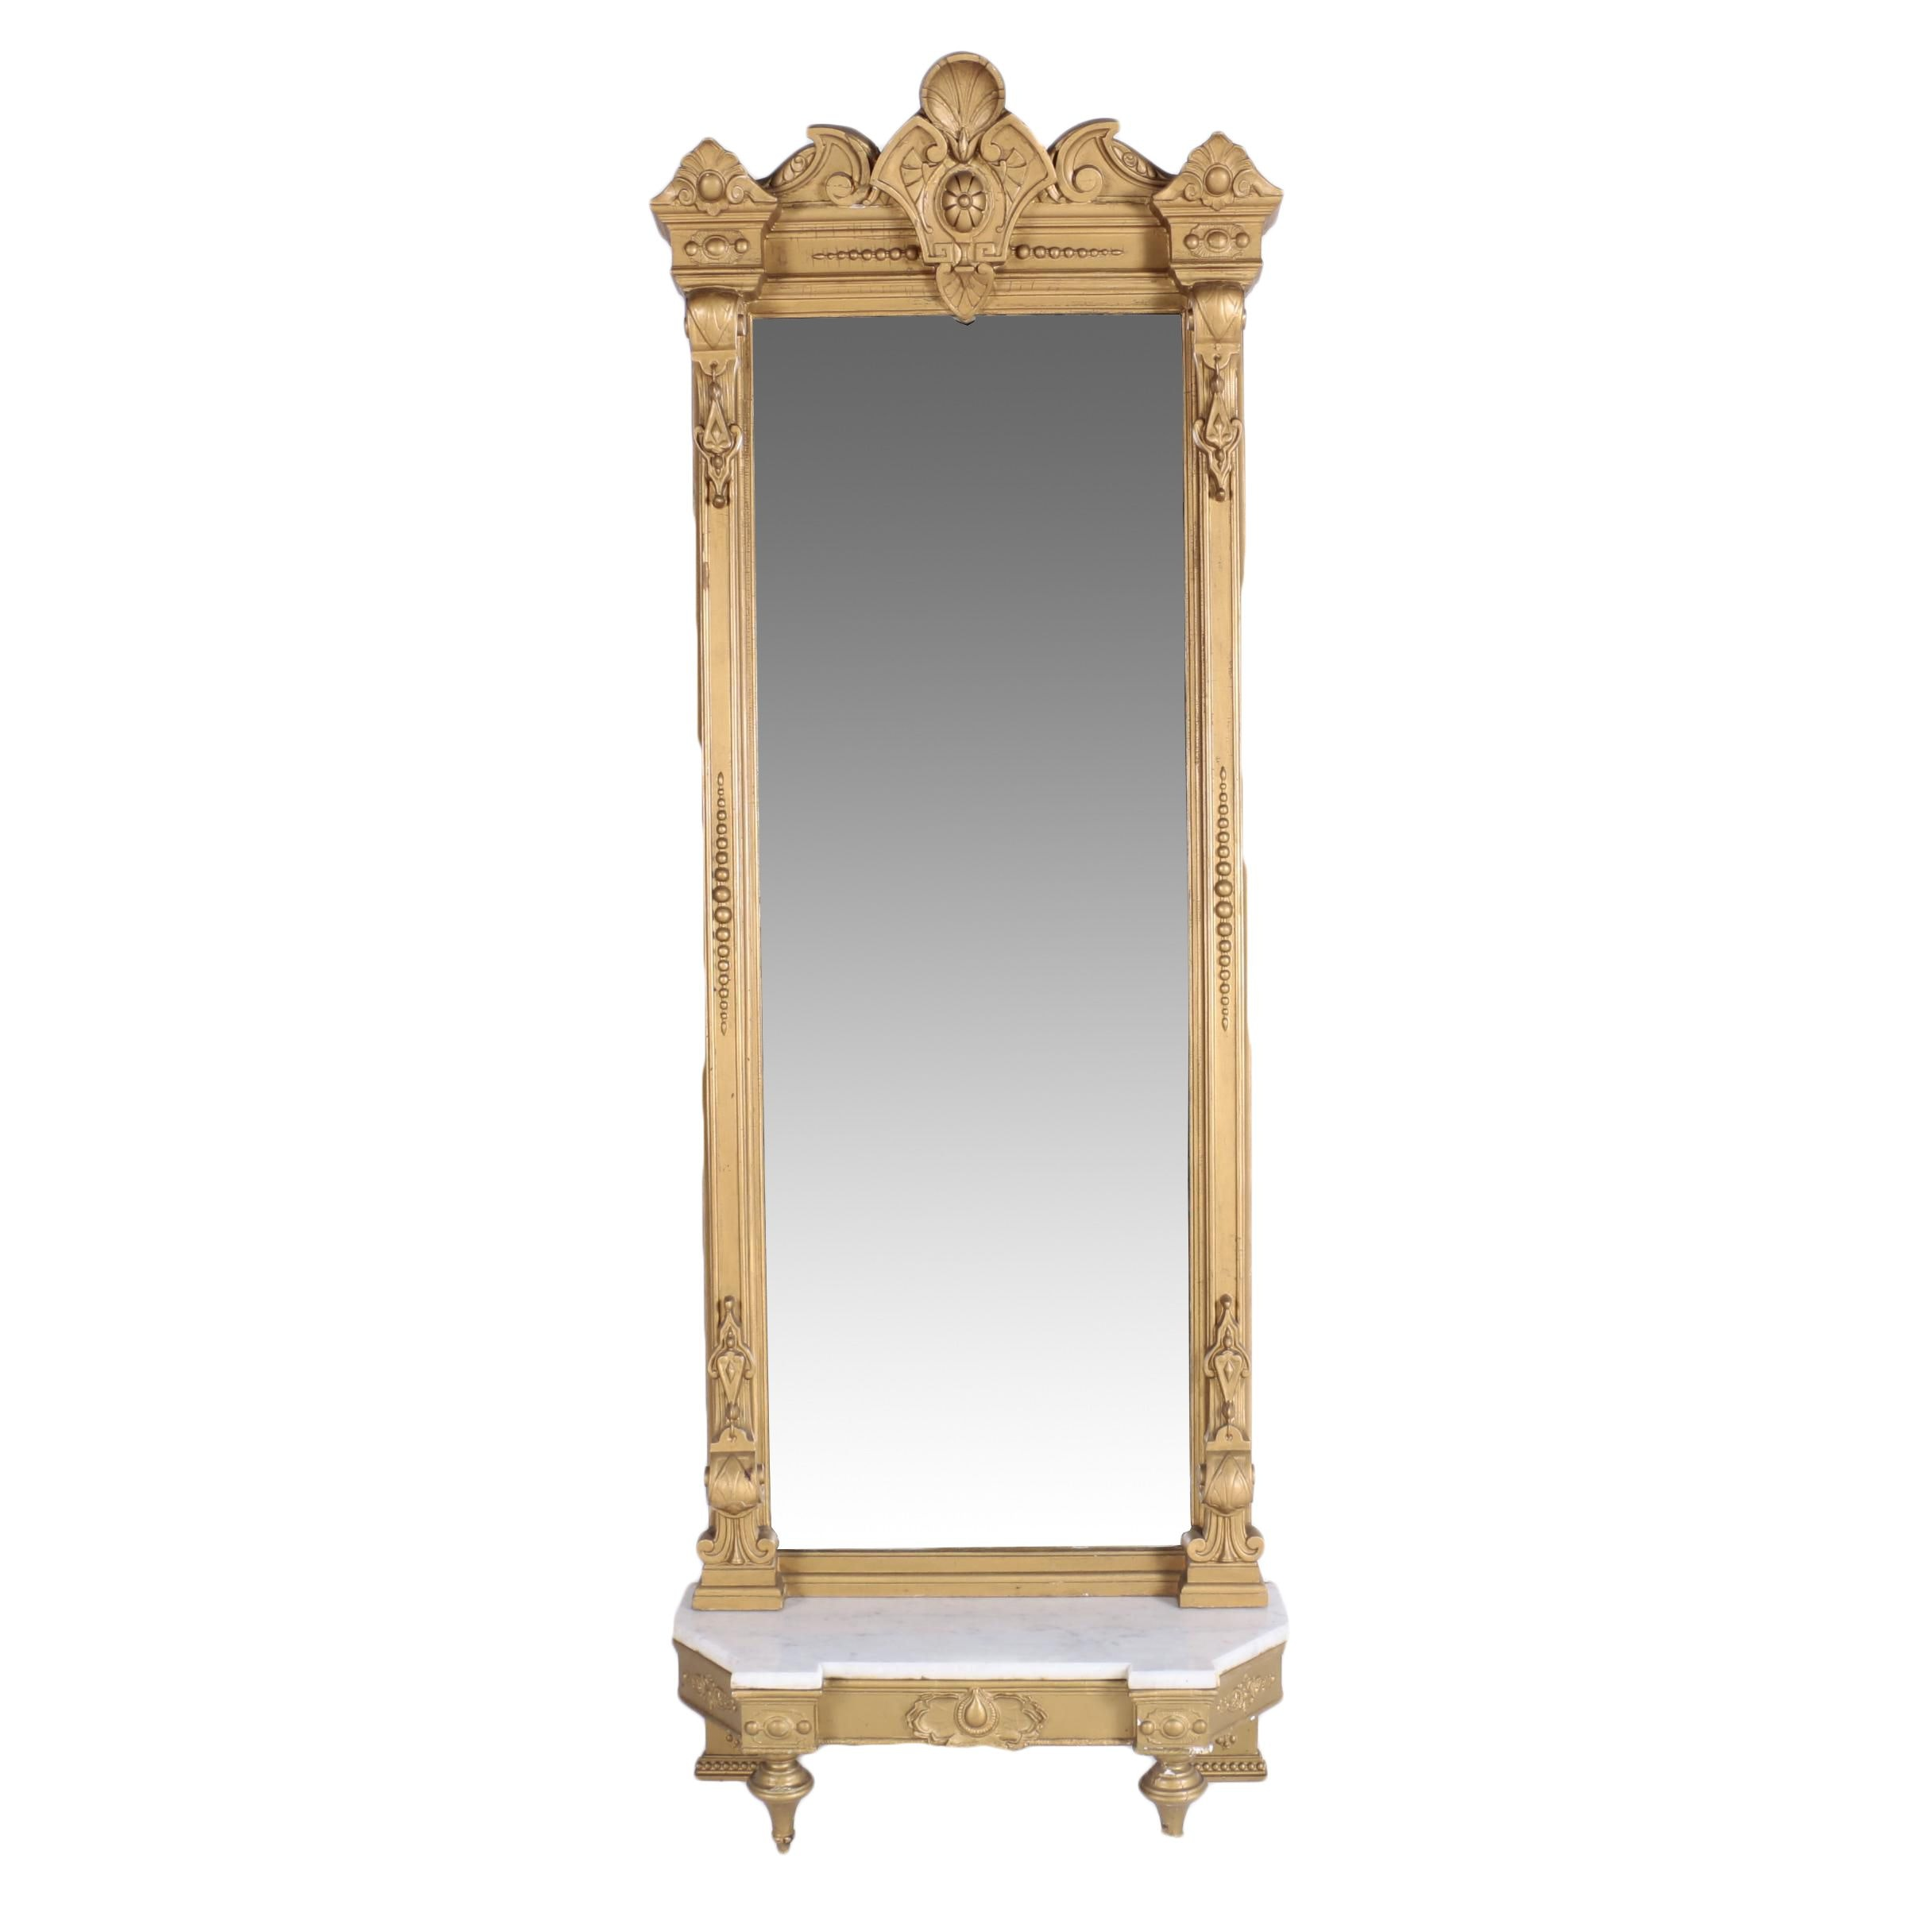 Victorian Giltwood Pier Mirror with White Marble-Top Console, Late 19th Century